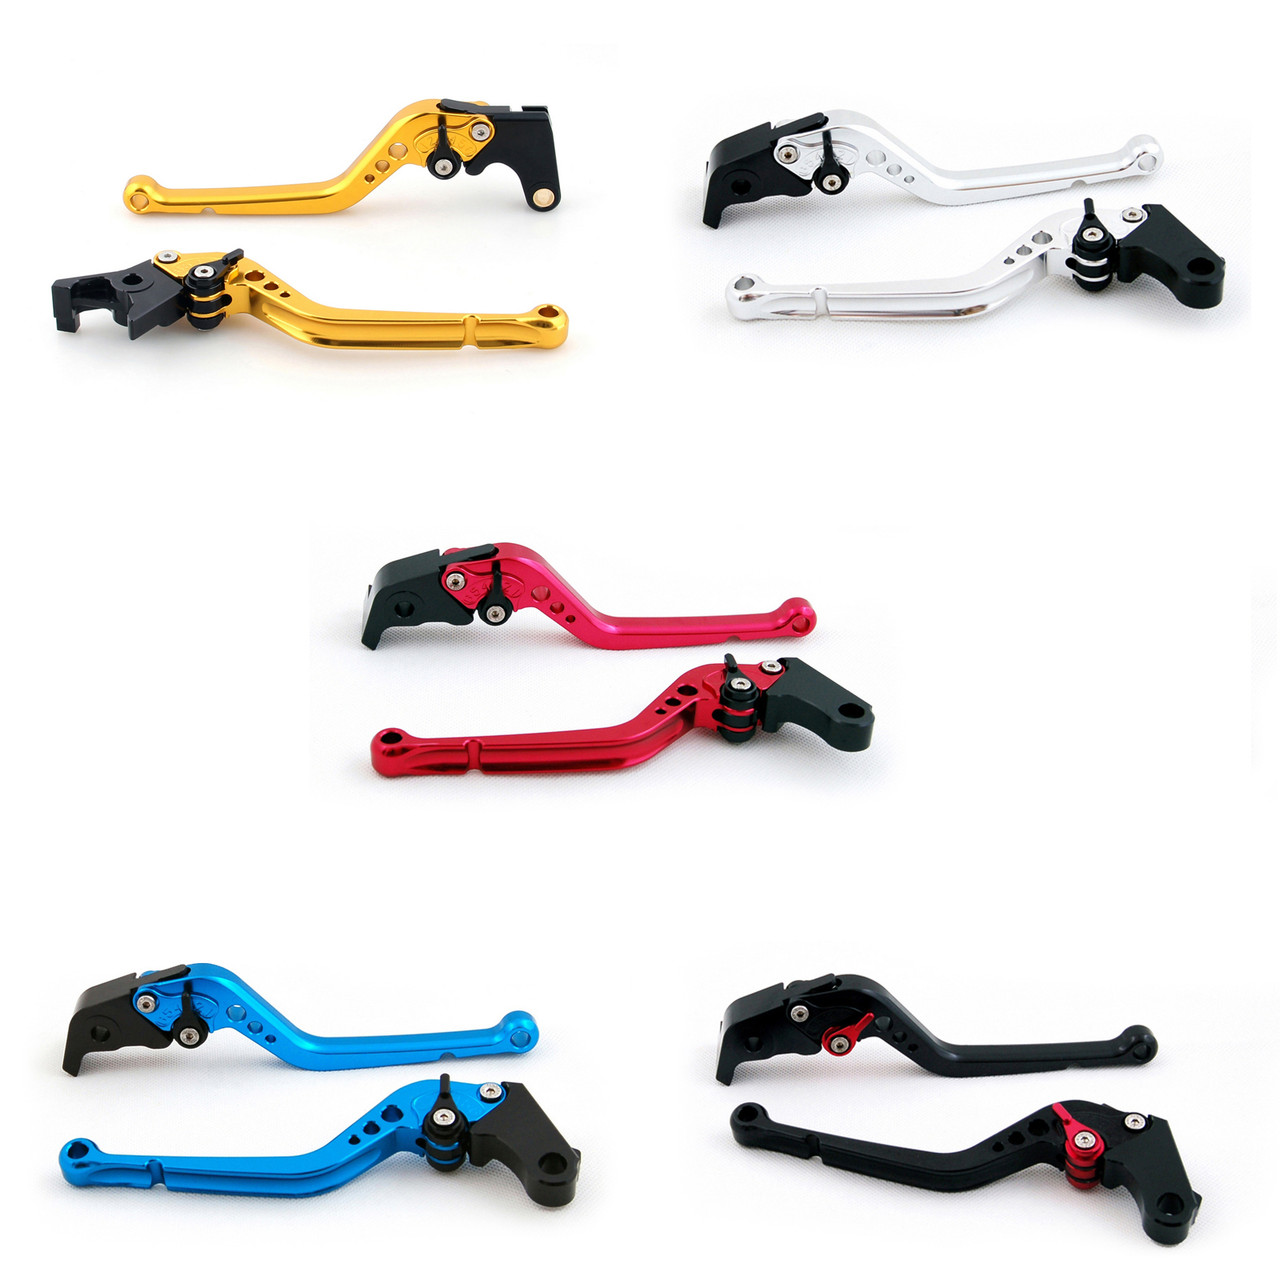 Standard Staff Length Adjustable Brake Clutch Levers Kawasaki NINJA 300R Z300 /ABS  2013-2017 (F-25/K-25)